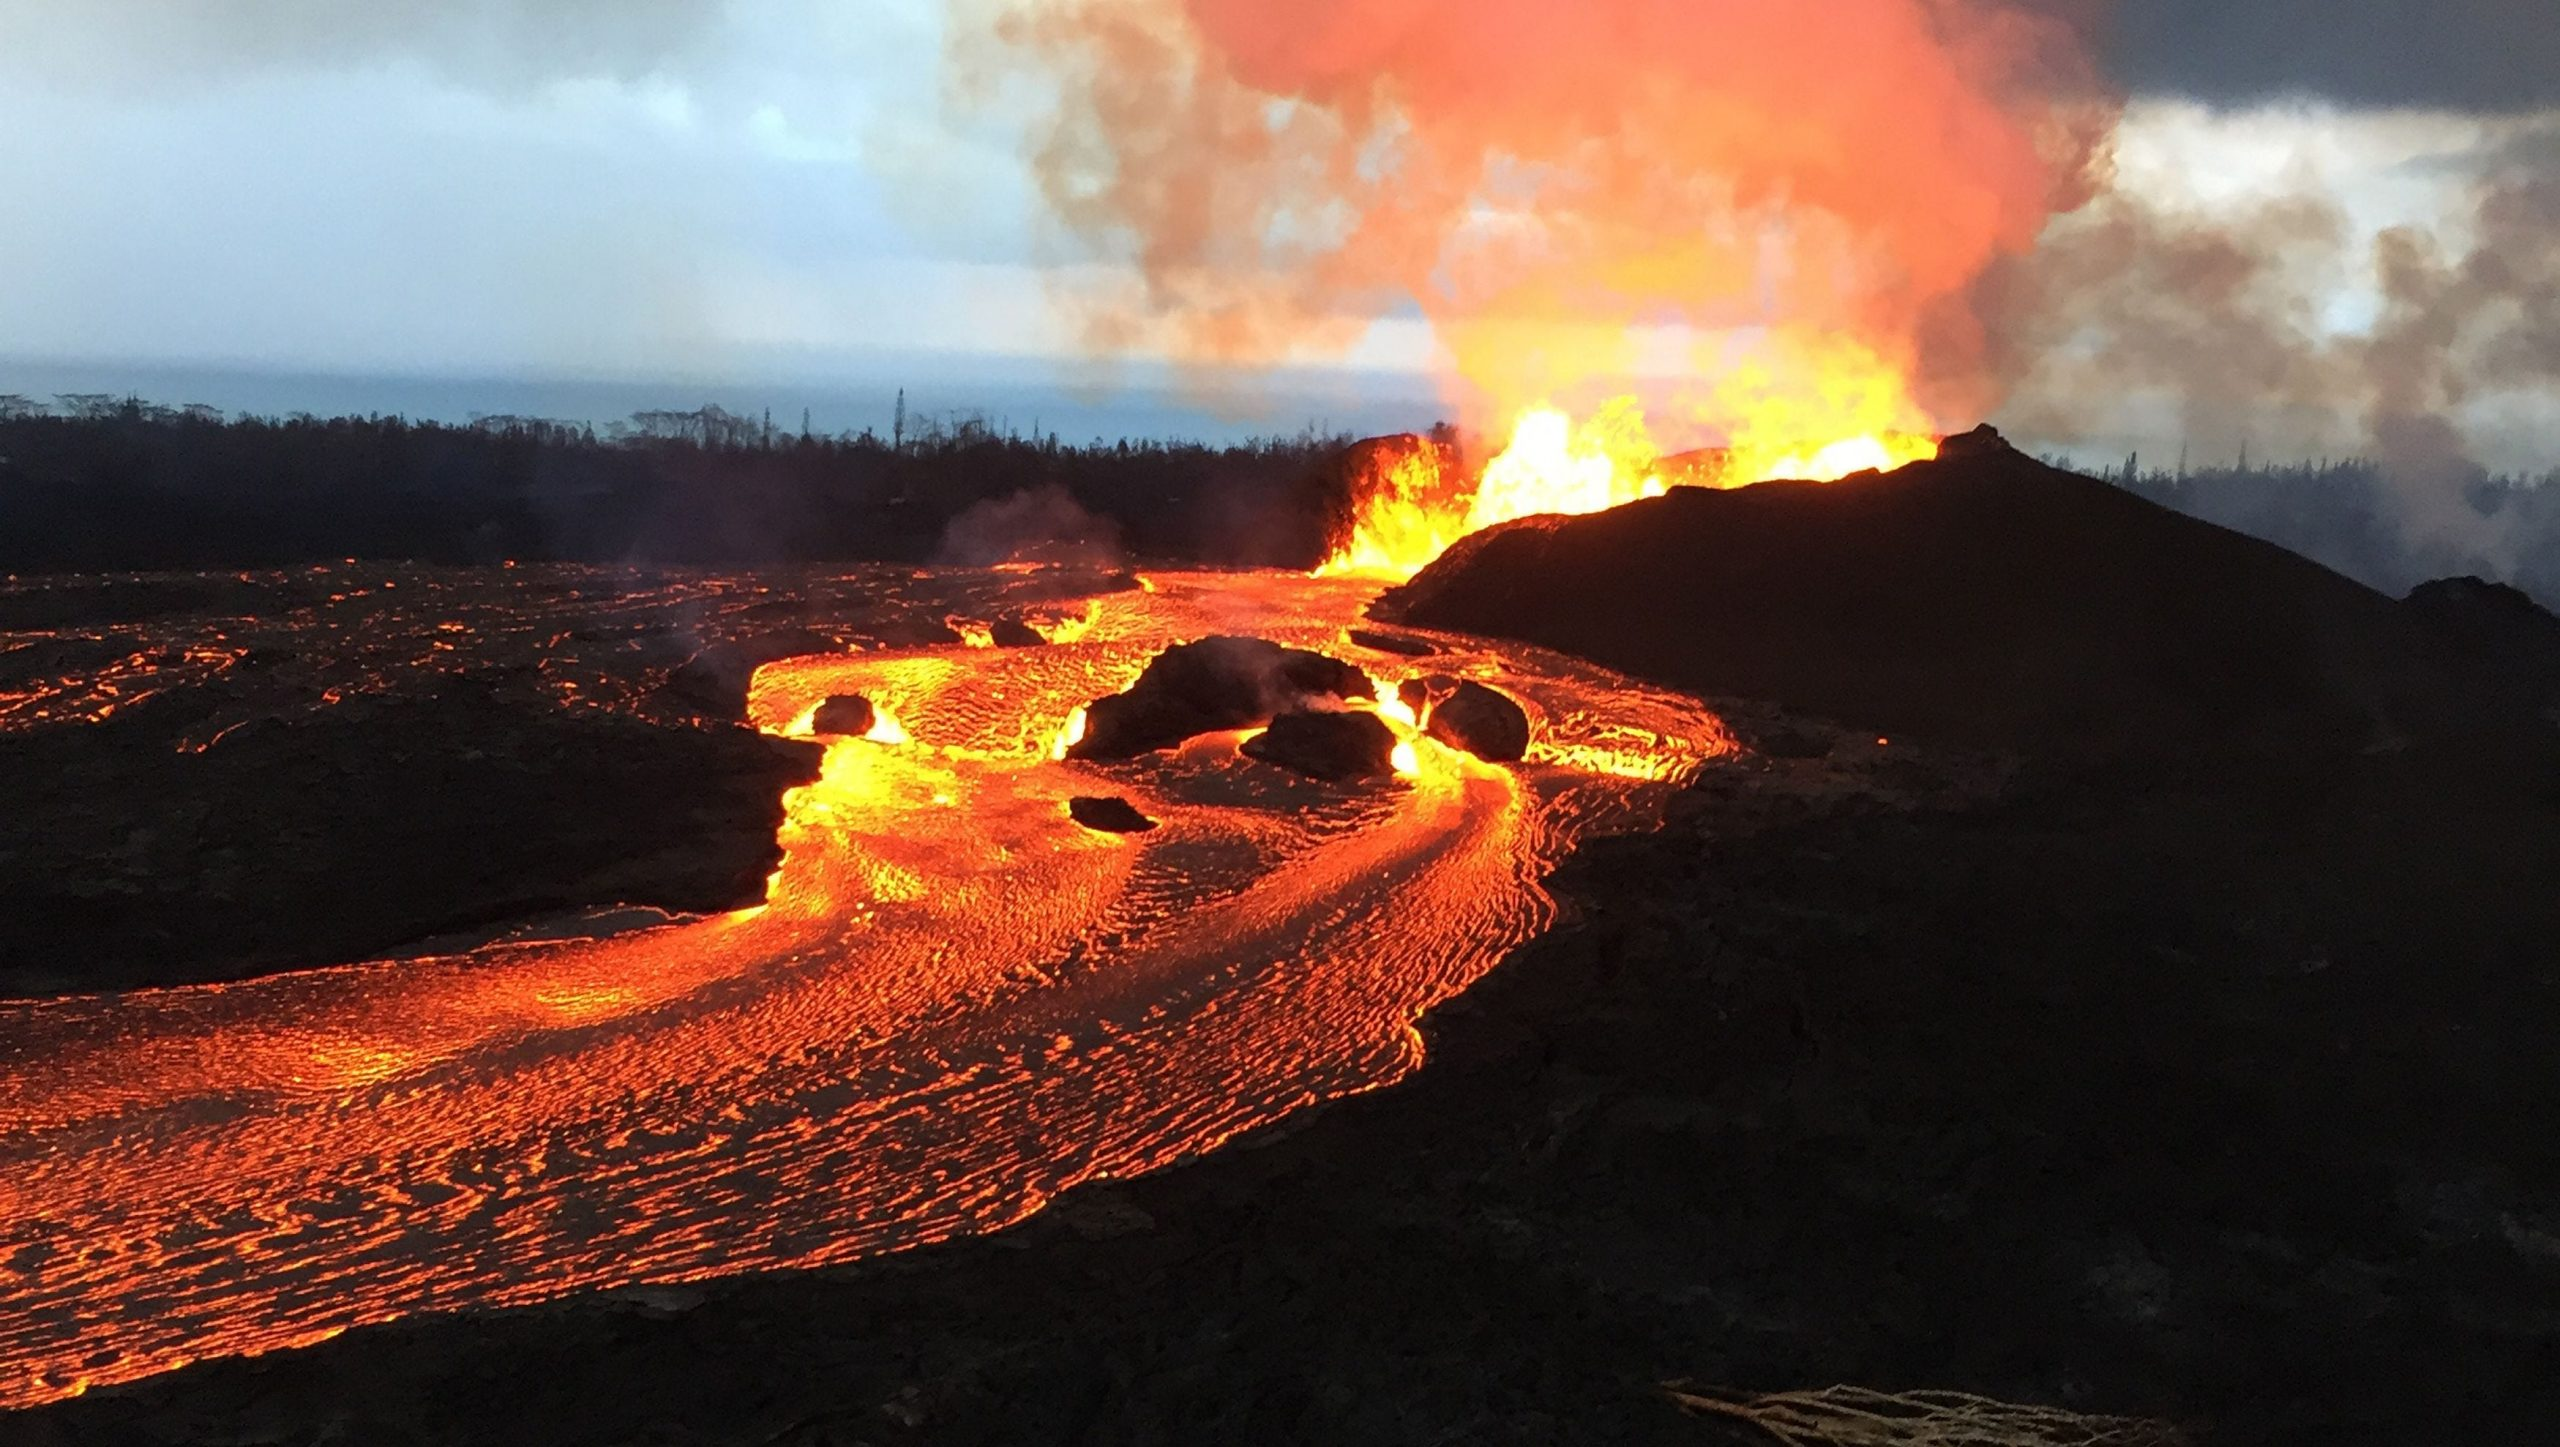 Kilauea - One of the World's most active Volcanoes